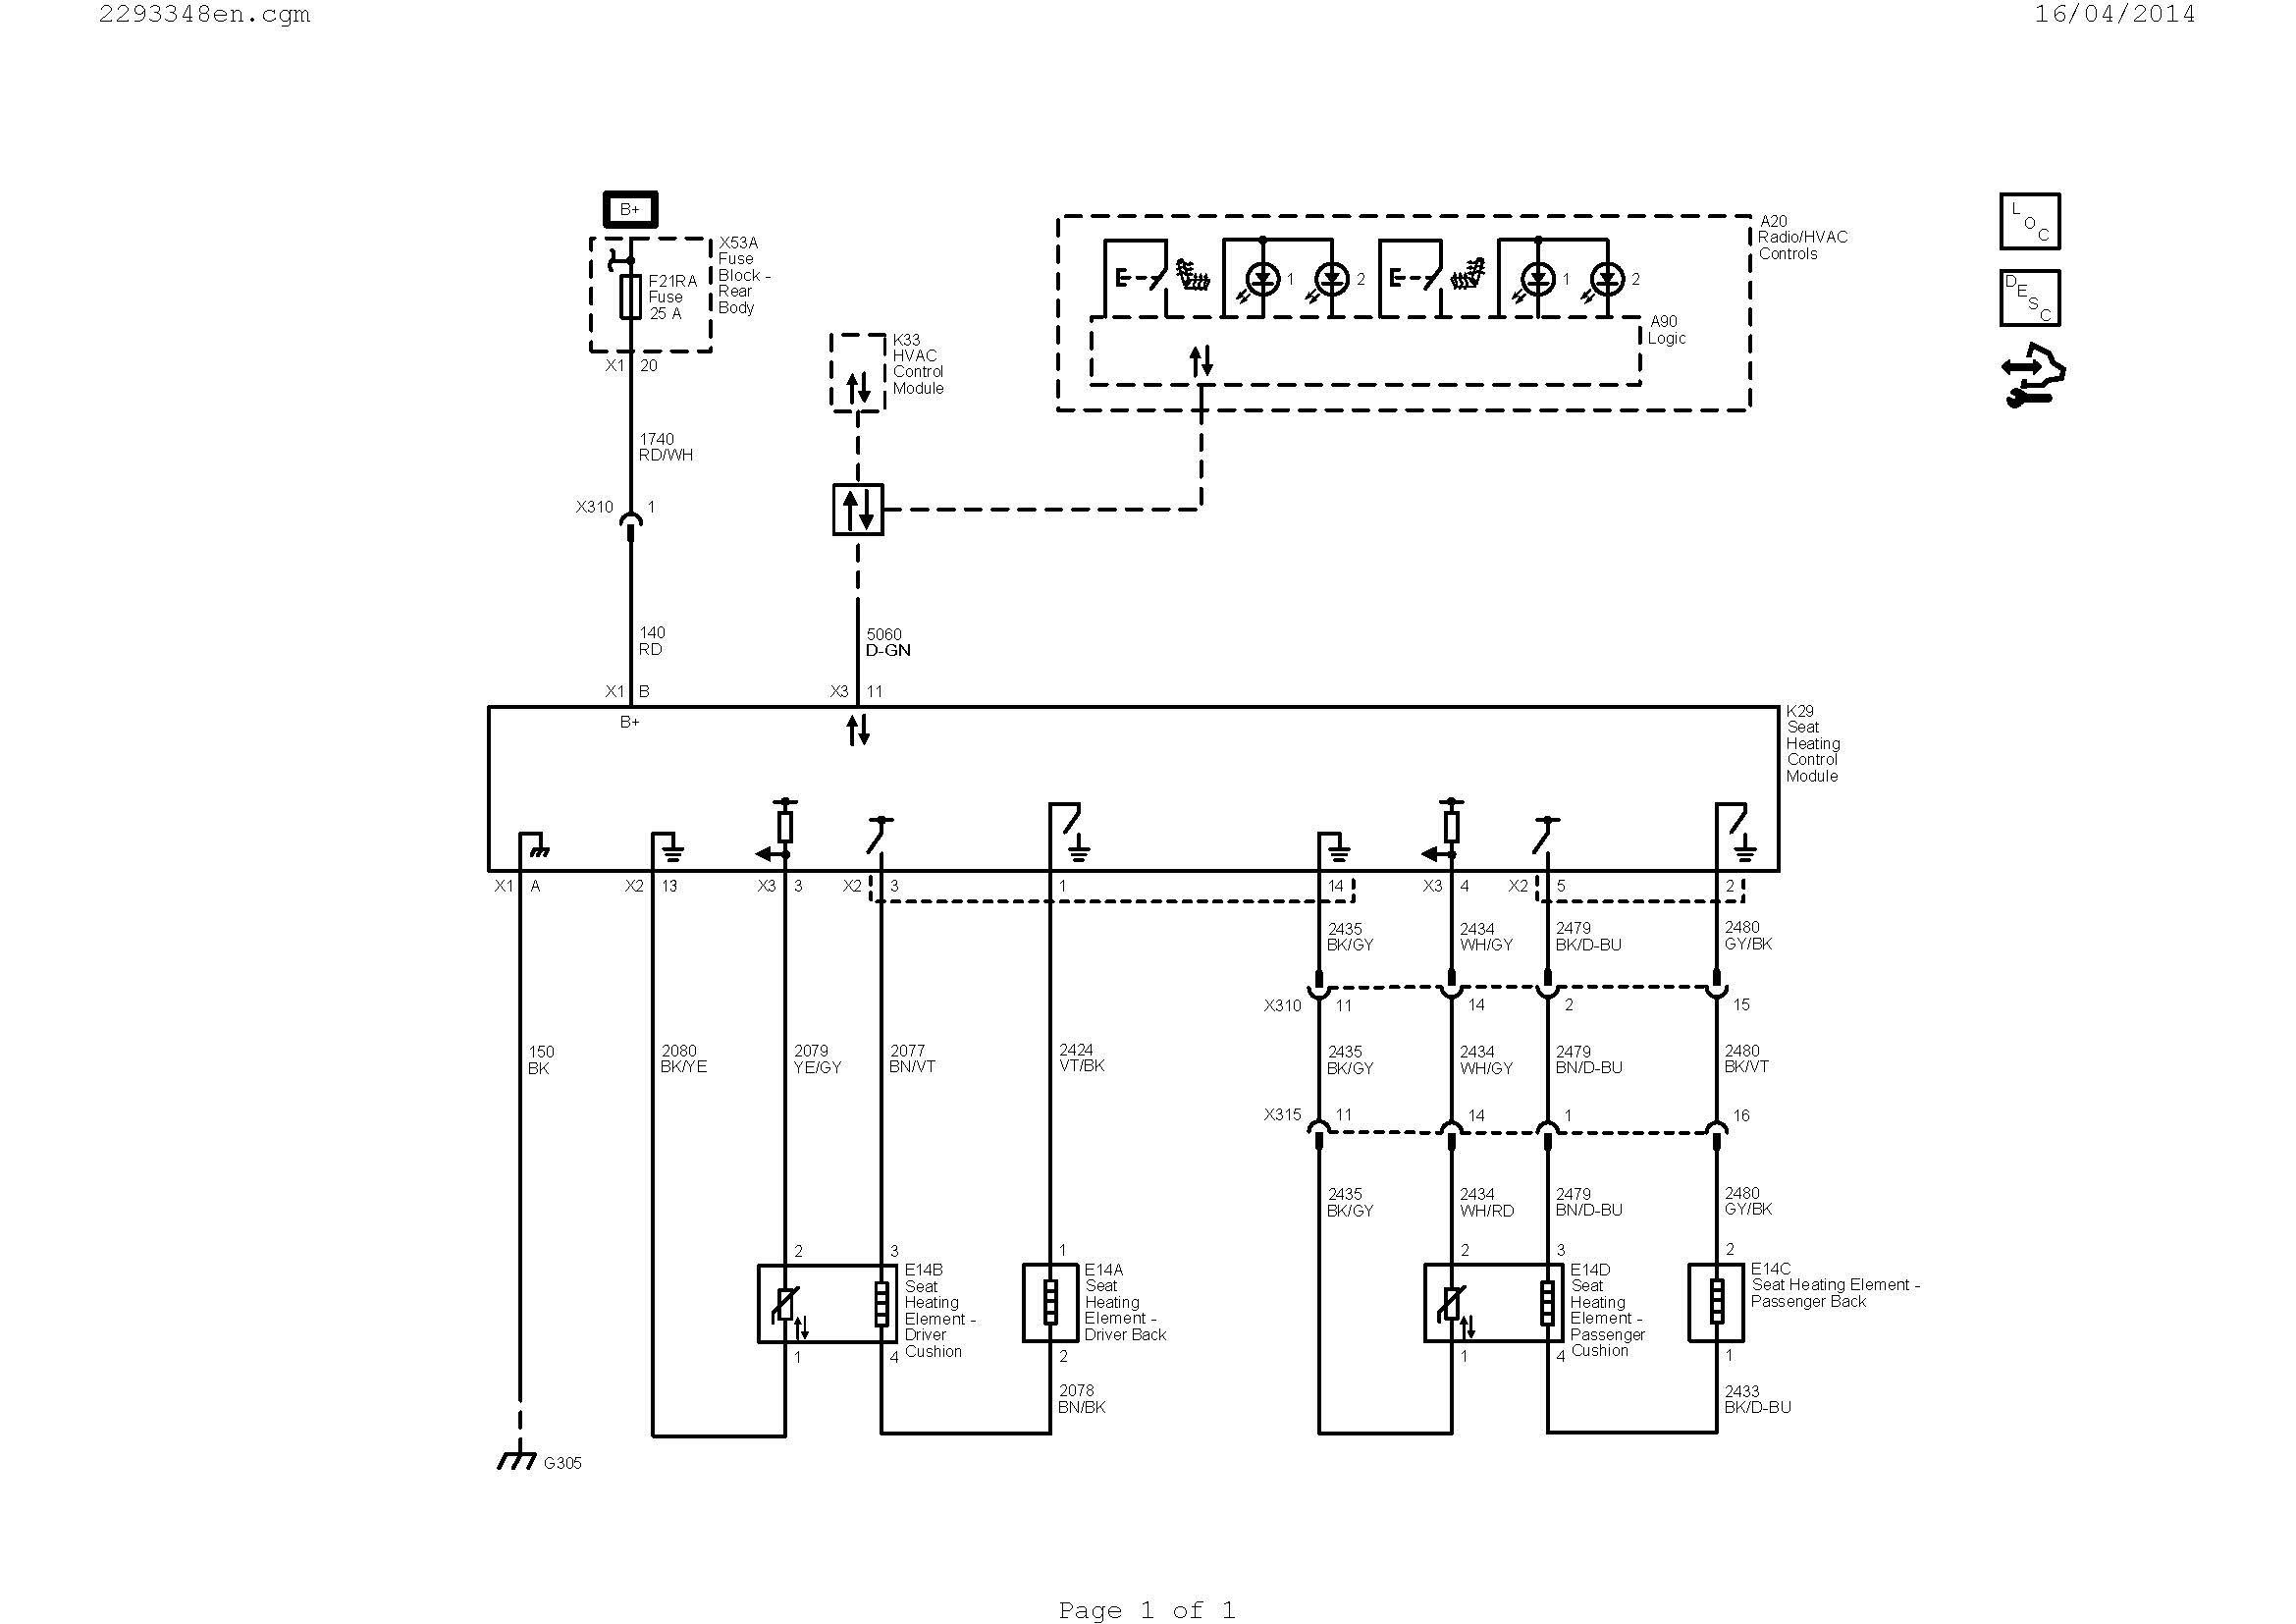 air conditioner thermostat wiring diagram Collection-Wiring A Ac Thermostat Diagram New Wiring Diagram Ac Valid Hvac Diagram Best Hvac Diagram 0d – Wire 17-c